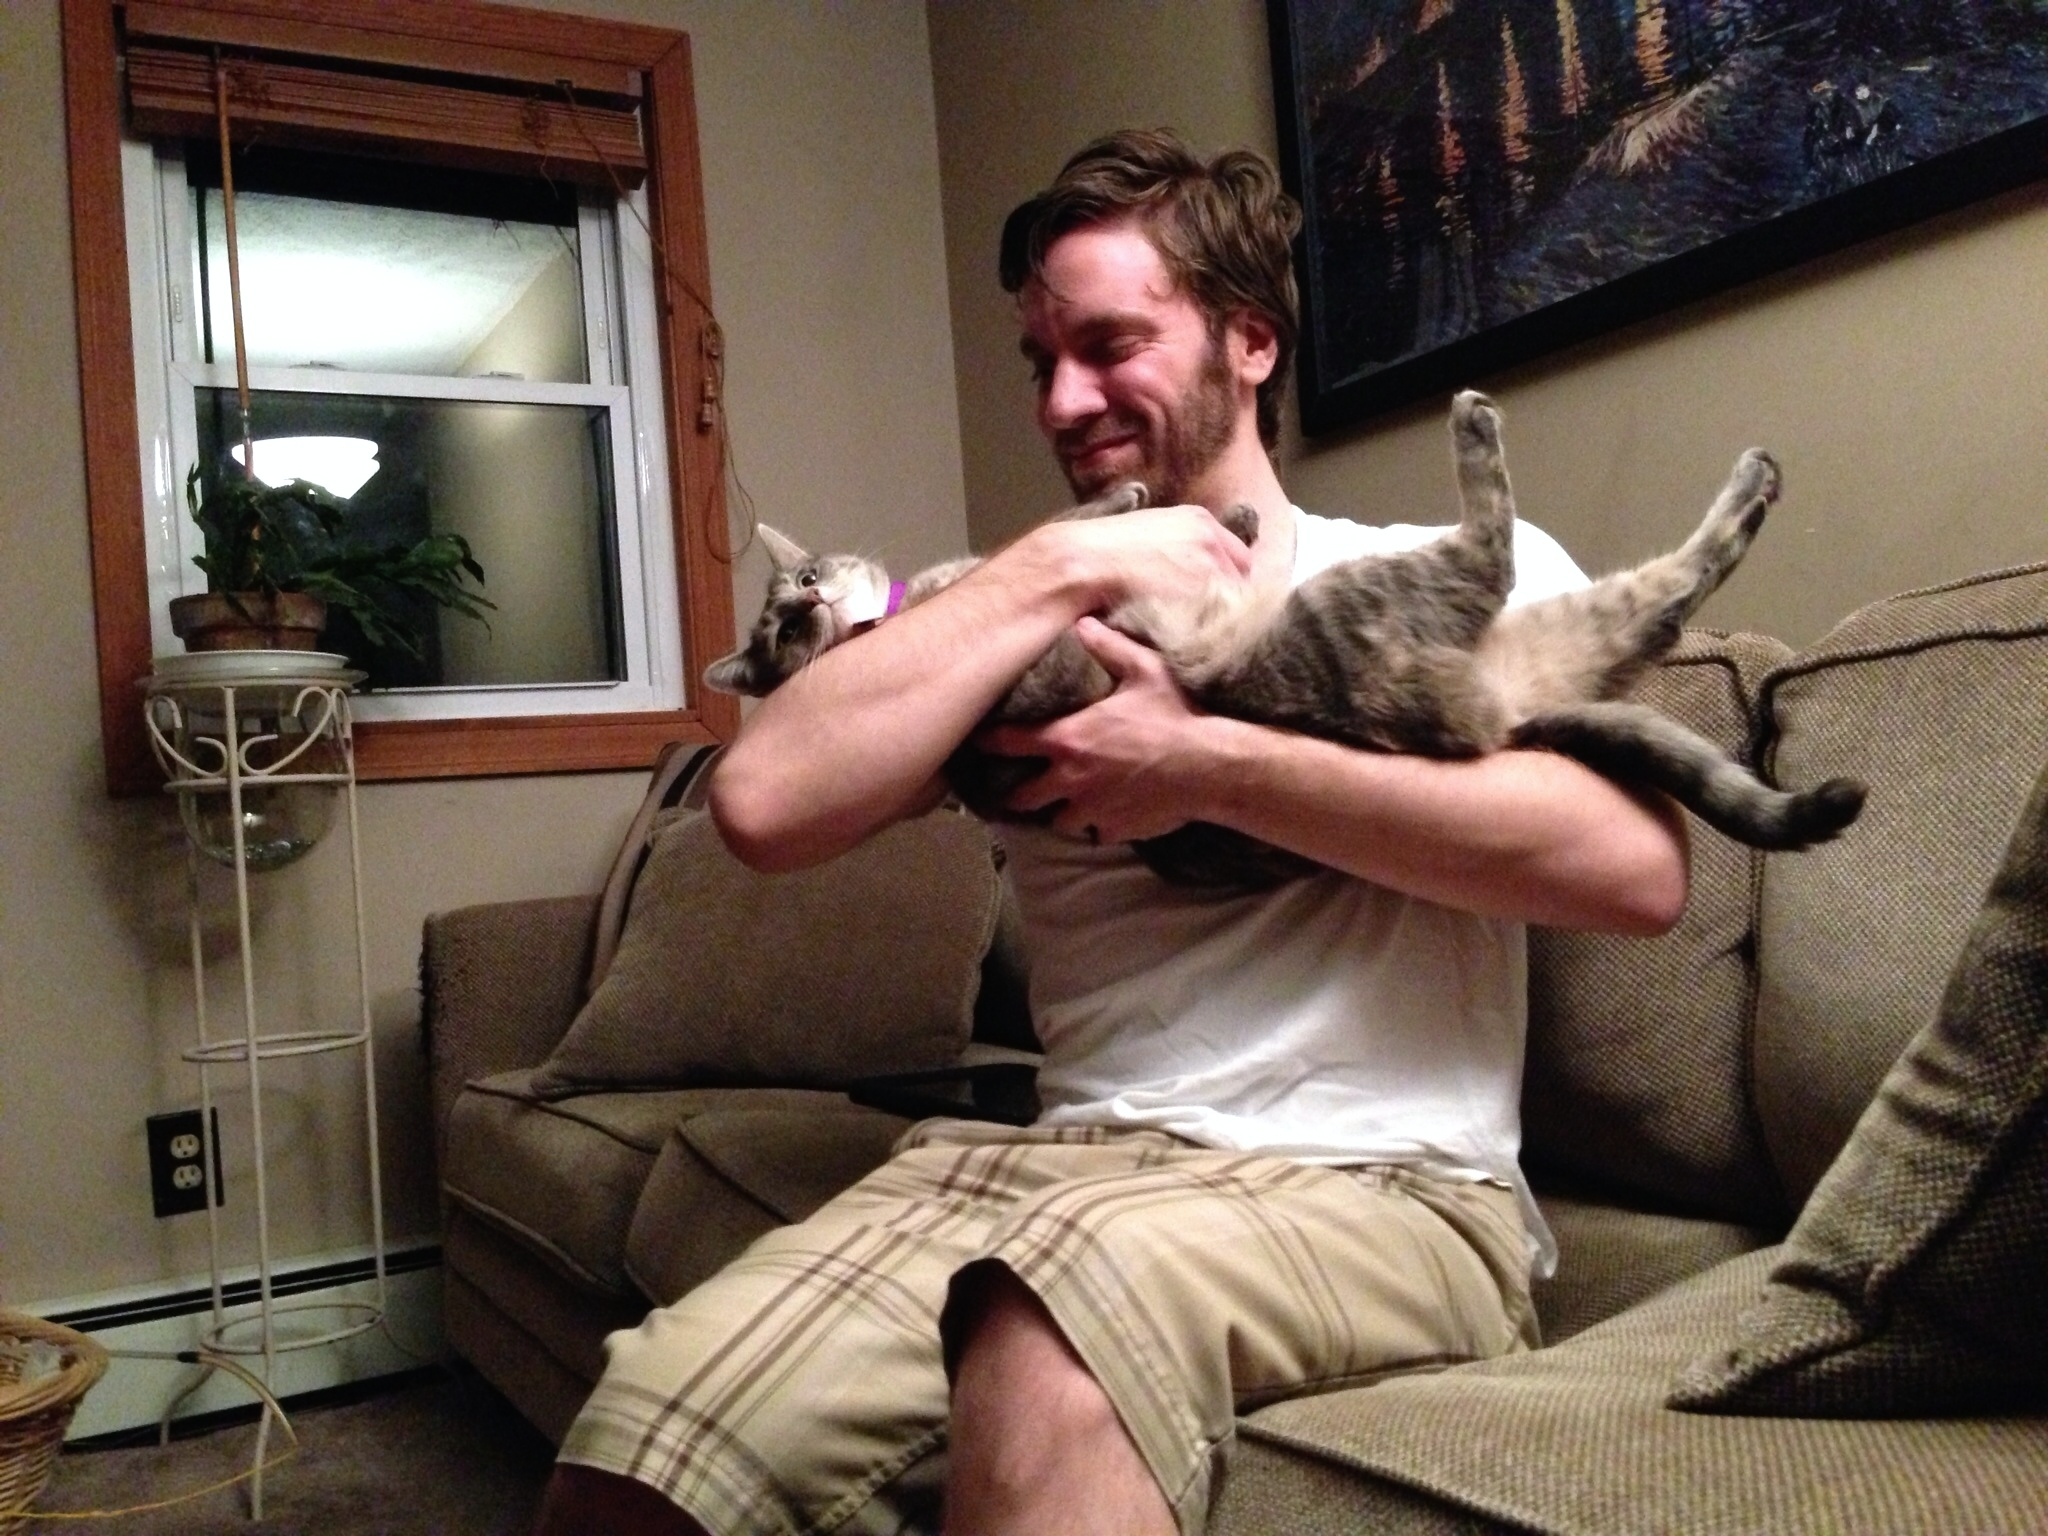 Study says men prefer cats over women: Why?